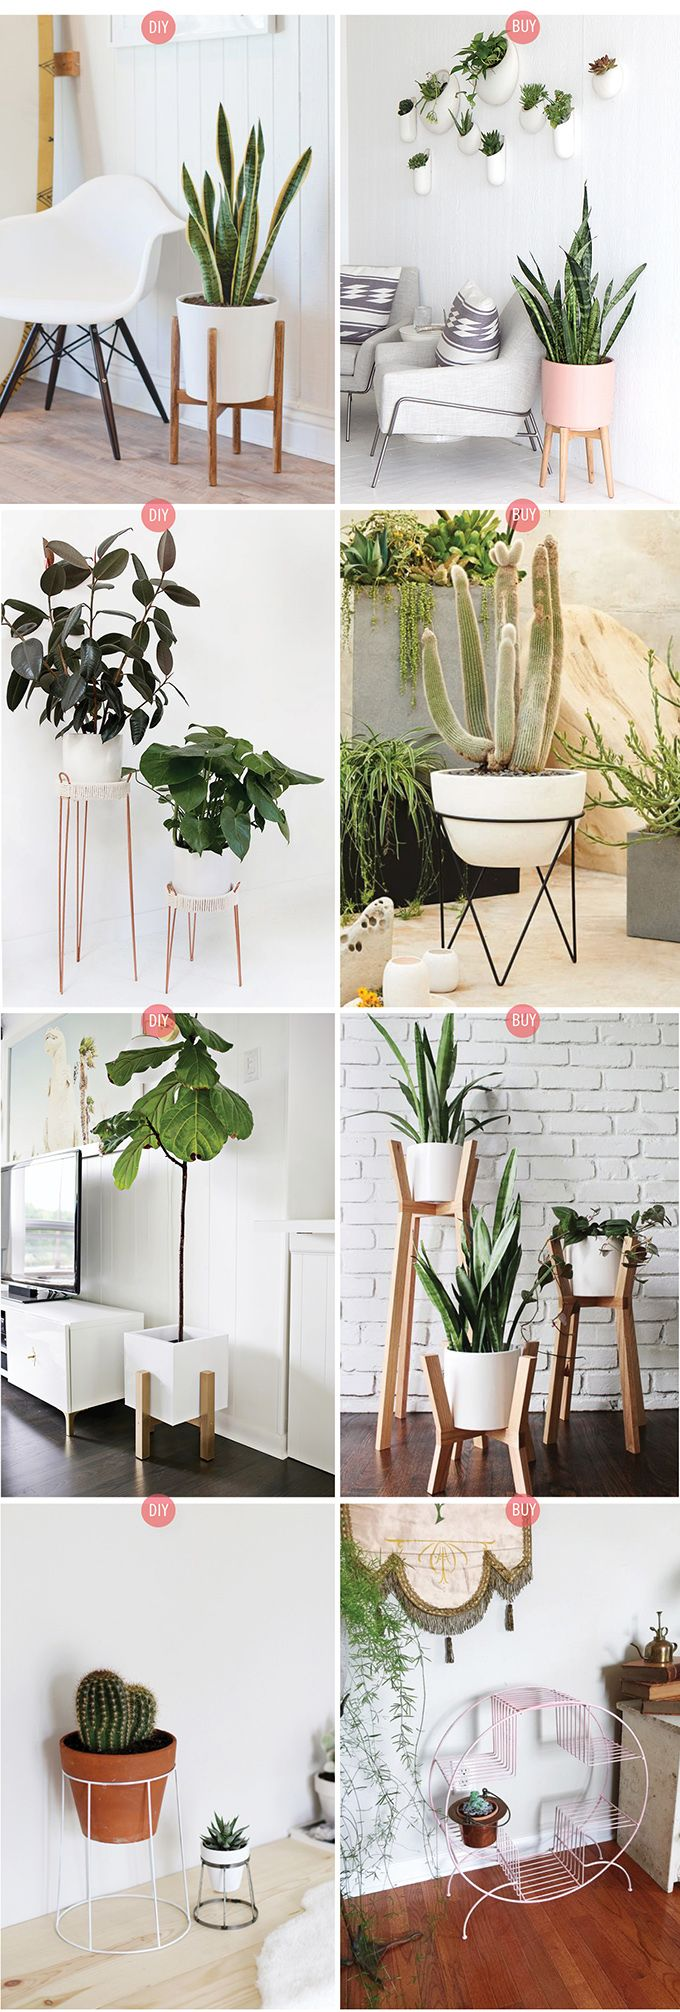 Need some ideas to display your plants indoor and outdoor?  Here you go: We have listed a lot of easily made plant stand ideas to put some greenery accent to your home. Hope you like it. :)